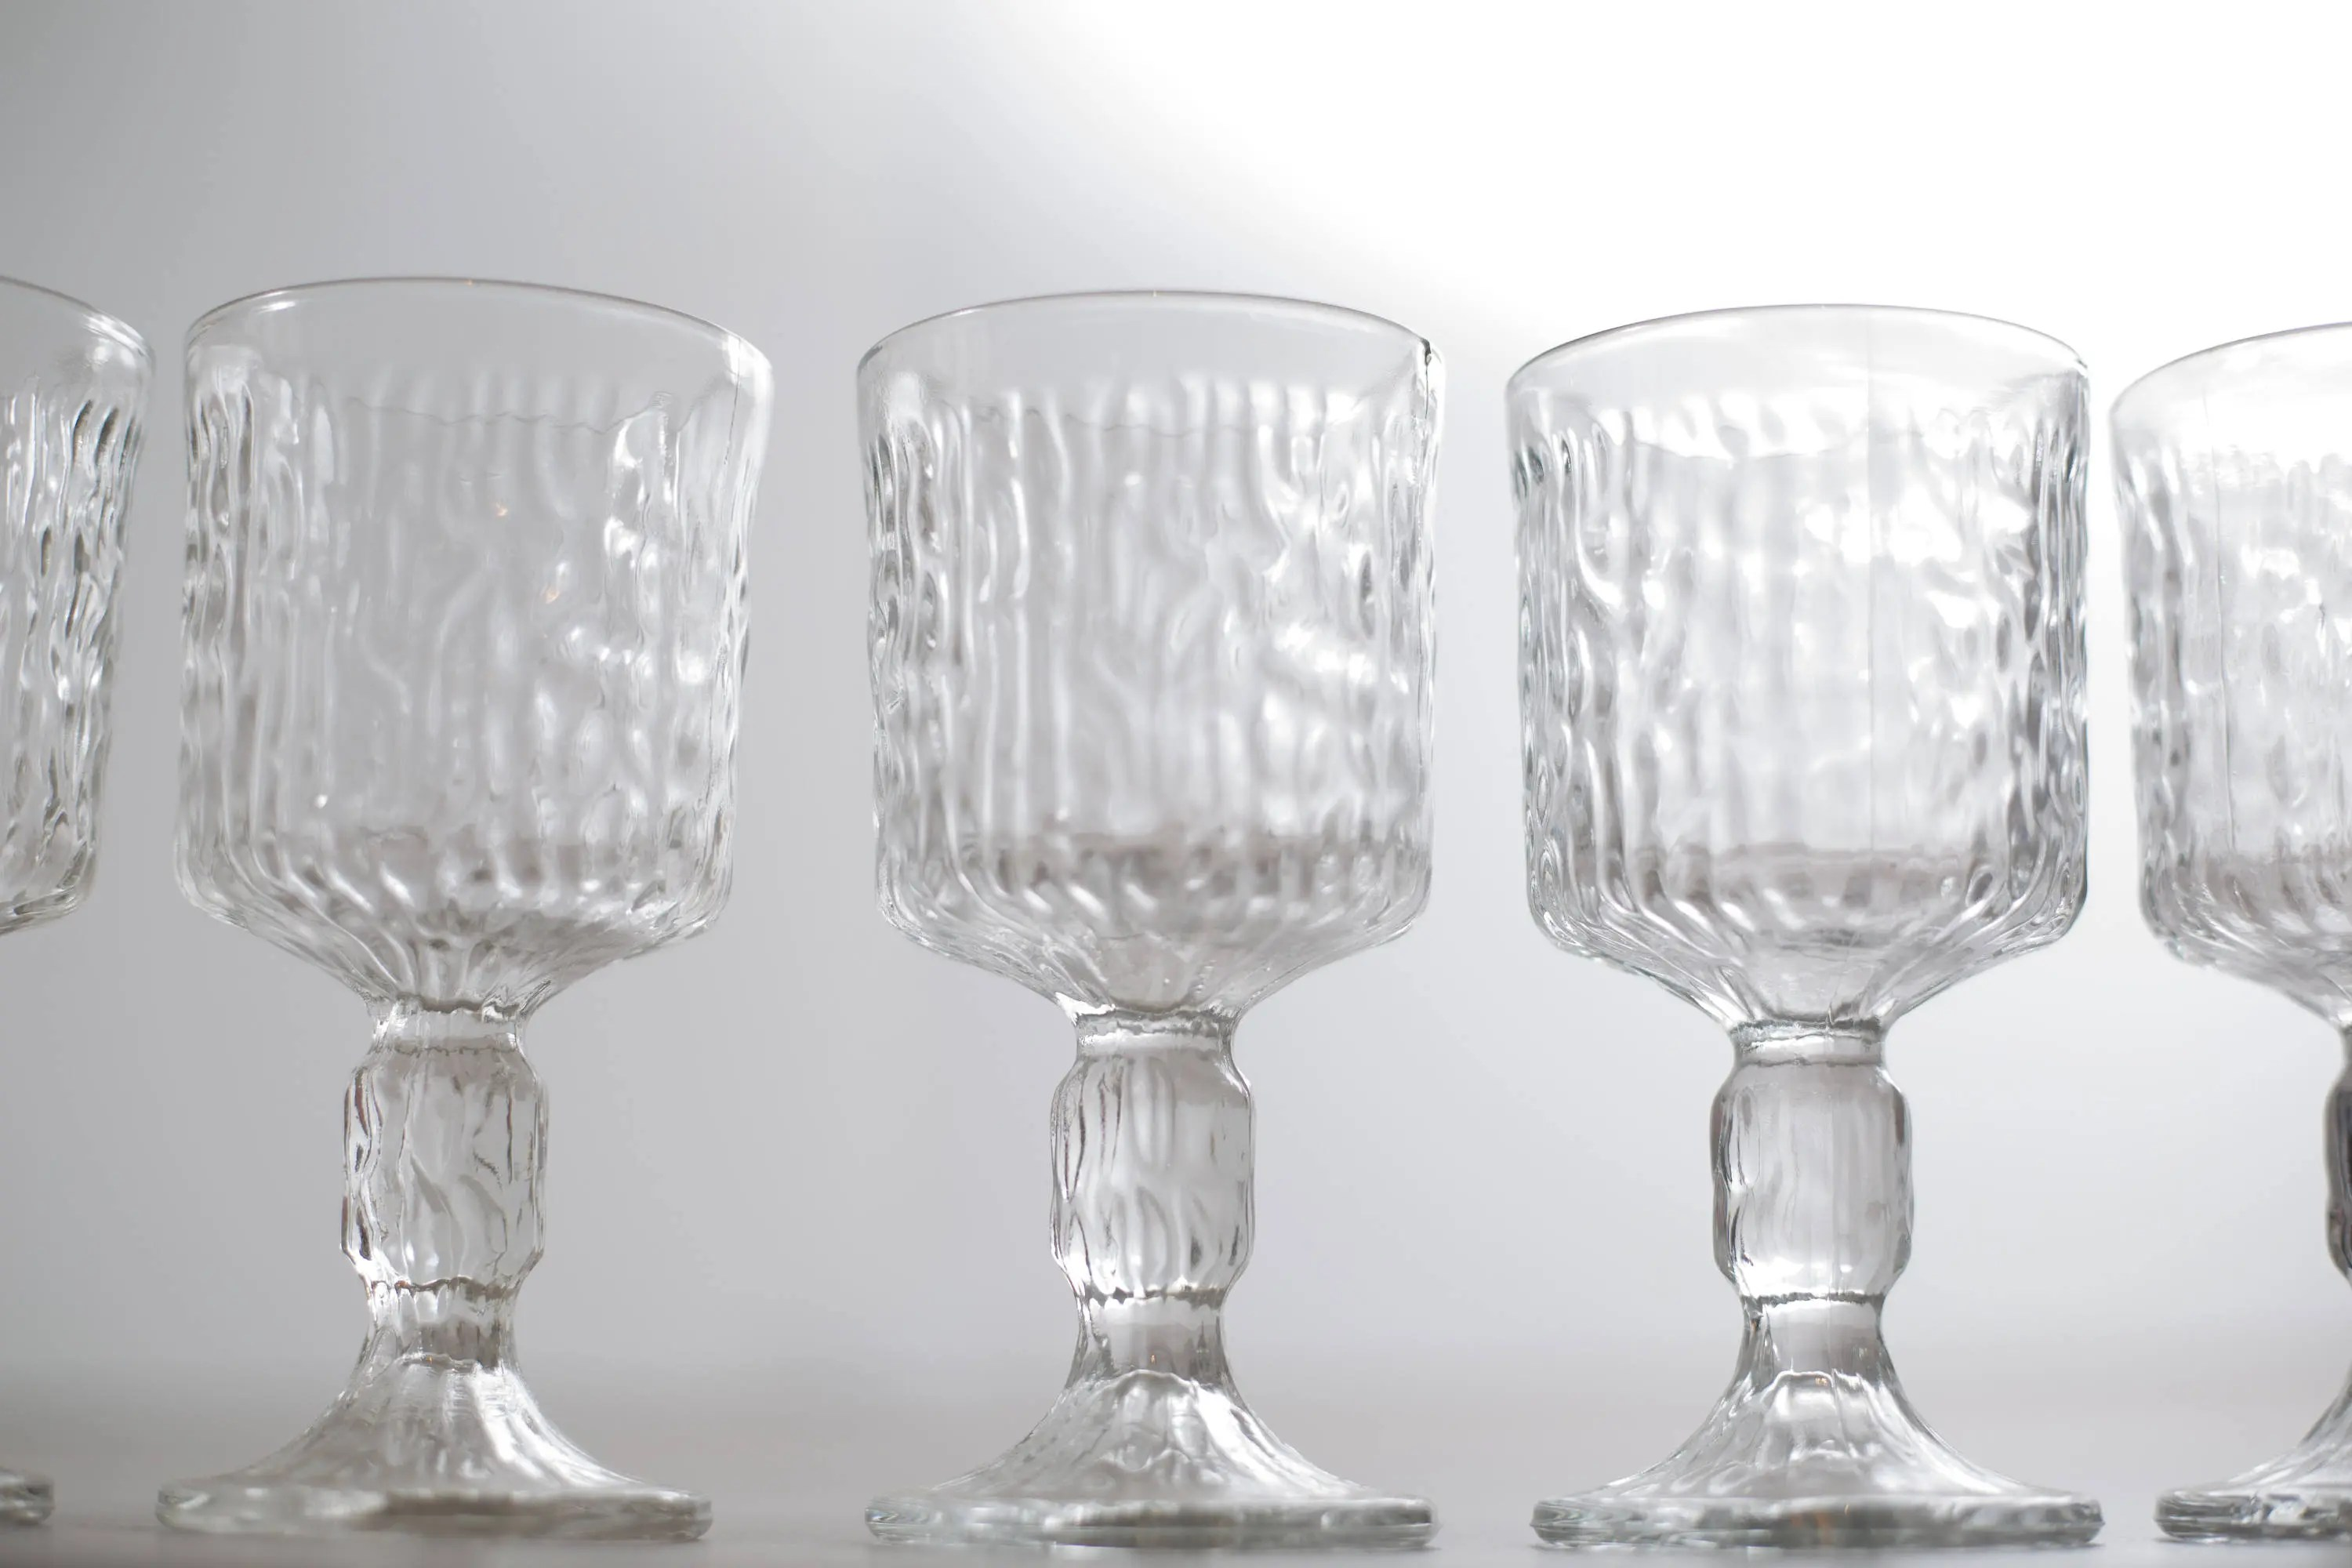 Goblet Style Wine Glasses Vintage Icicle Glass Goblet Textured Scandinavian